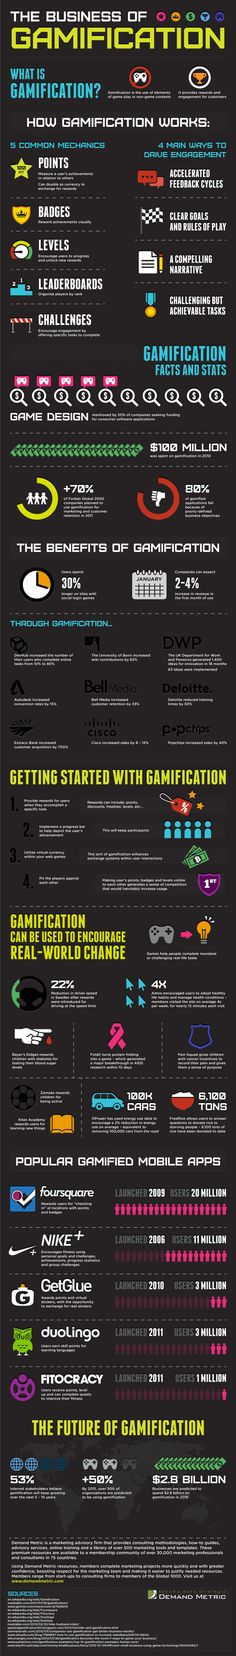 Fortune 2000 companies are focused on #gamification.  Clear results if you design the right game for your customers.